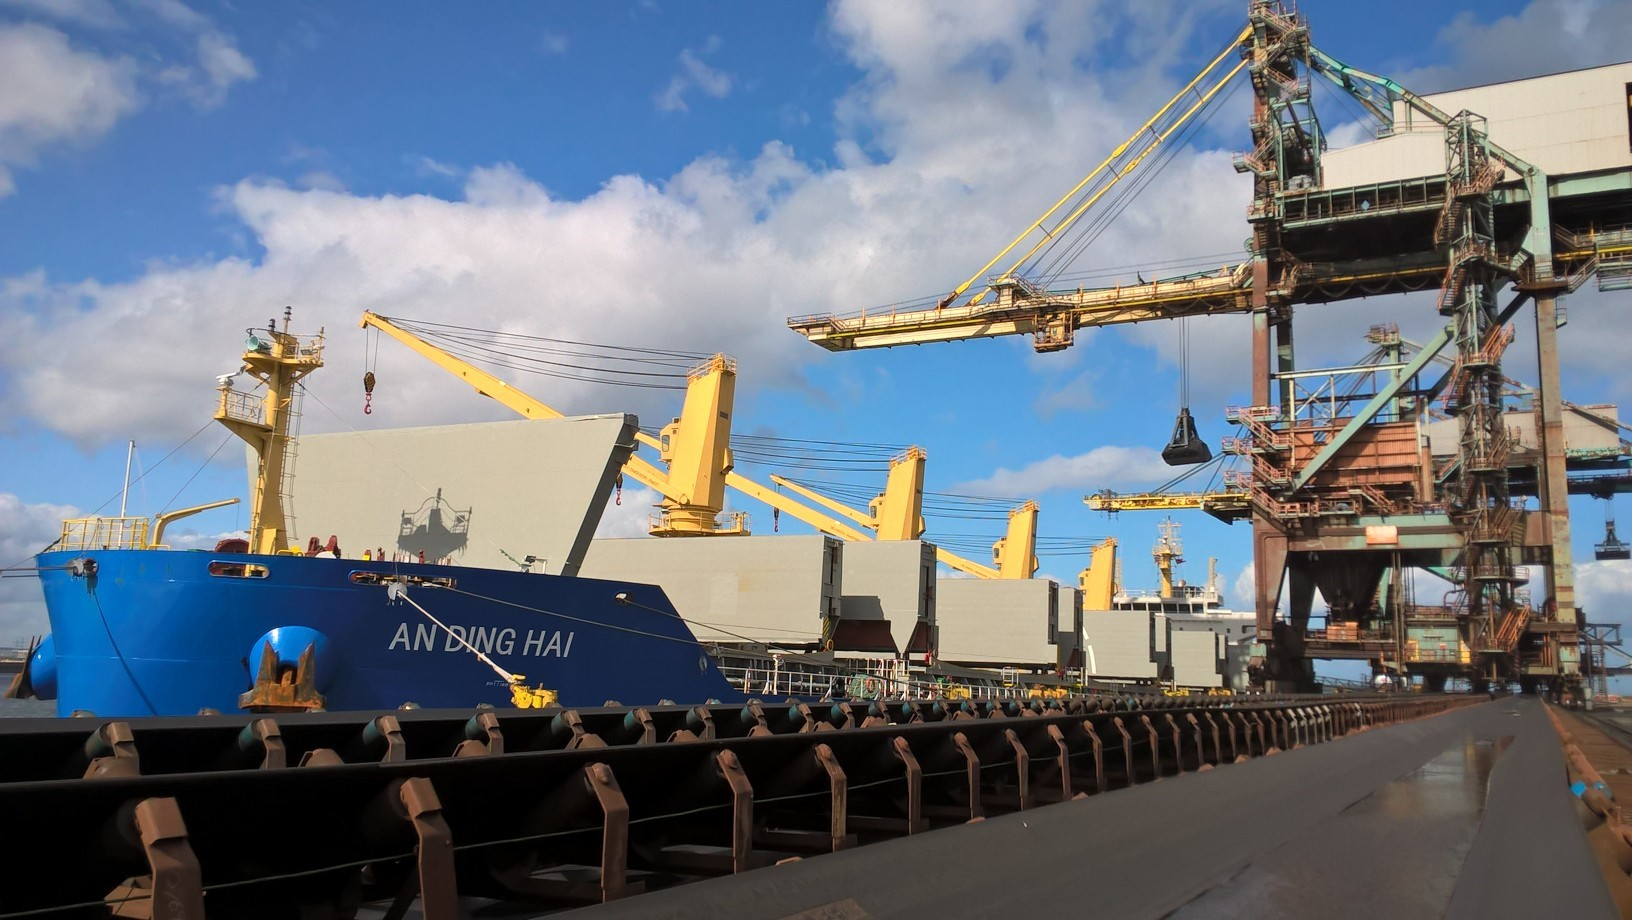 Redcar Bulk Terminal, which is 50% owned by British Steel, has secured major new contracts with Javelin Global Commodities and Hanson